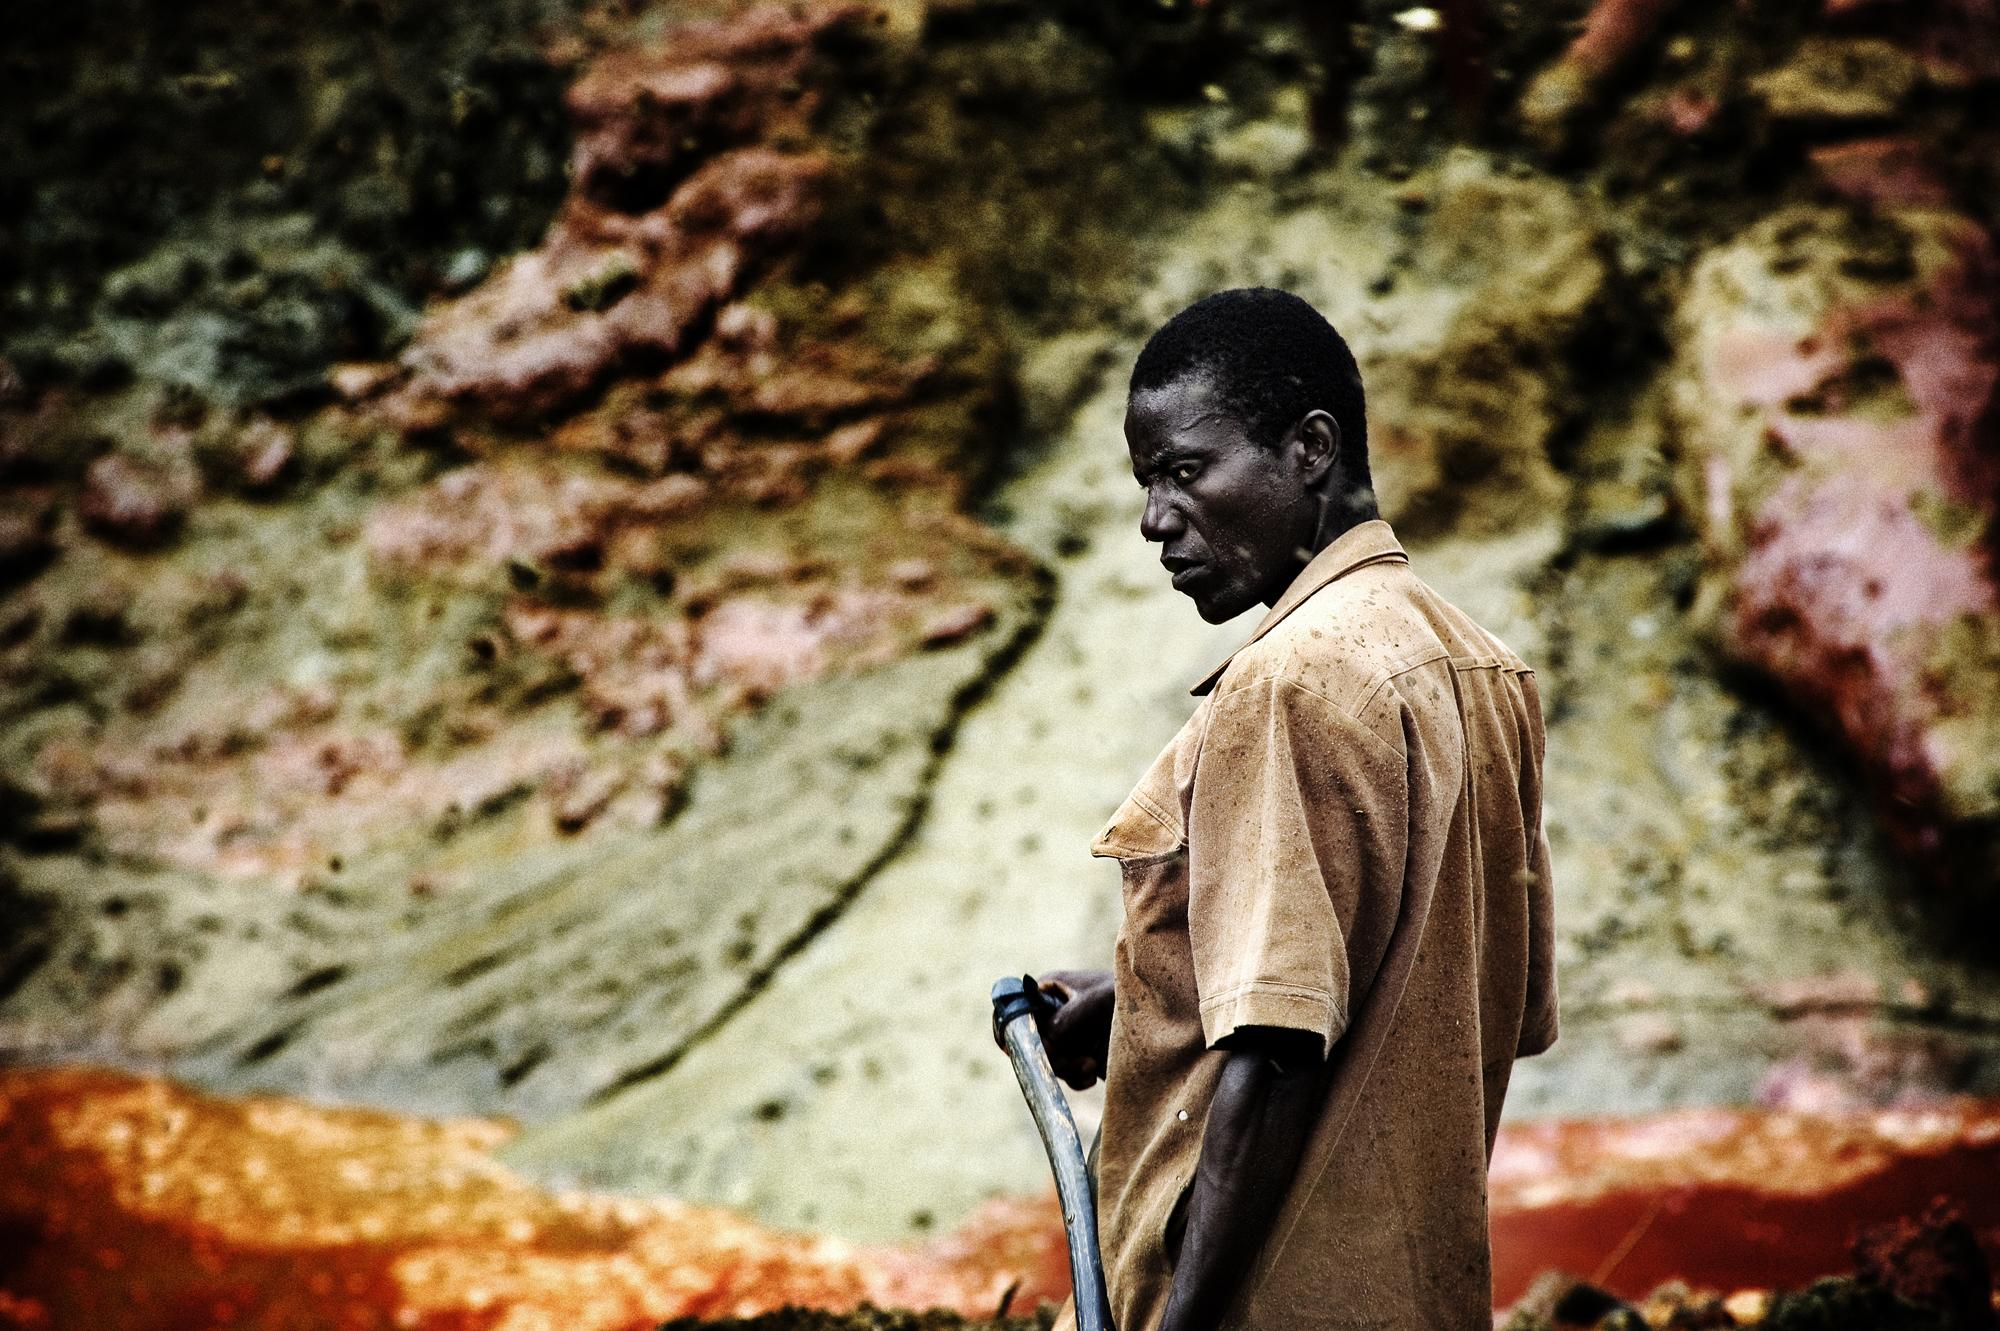 Sierra Leone, Koidu. August 2008. Diamond diggers working at the mine. Over the last three decades, Sierra Leone has suffered from conspicuously constrained economic growth. In spite of this negative development, the mining sector is believed to be the only sector that can easily contribute significantly to the country's economic recovery and development process. The mining sector in Sierra Leone of which diamonds play a central role, was no doubt, the economic nerve center for the growth and development of the country in the 1960s and 1970s. It was a major source of revenue for the government and its proper management had a significant implication in the economic, social and even political life of the people of Sierra Leone. With bad politics, poor management and downward economic trends, the diamond sector became mismanaged, uncoordinated; illegality prevailed and eventually collapsed. The 11-year brutal rebel war (1991-2002) was partly a result of this unfortunate situation that ended up drilling the last nail in the death coffin of the mining sector.